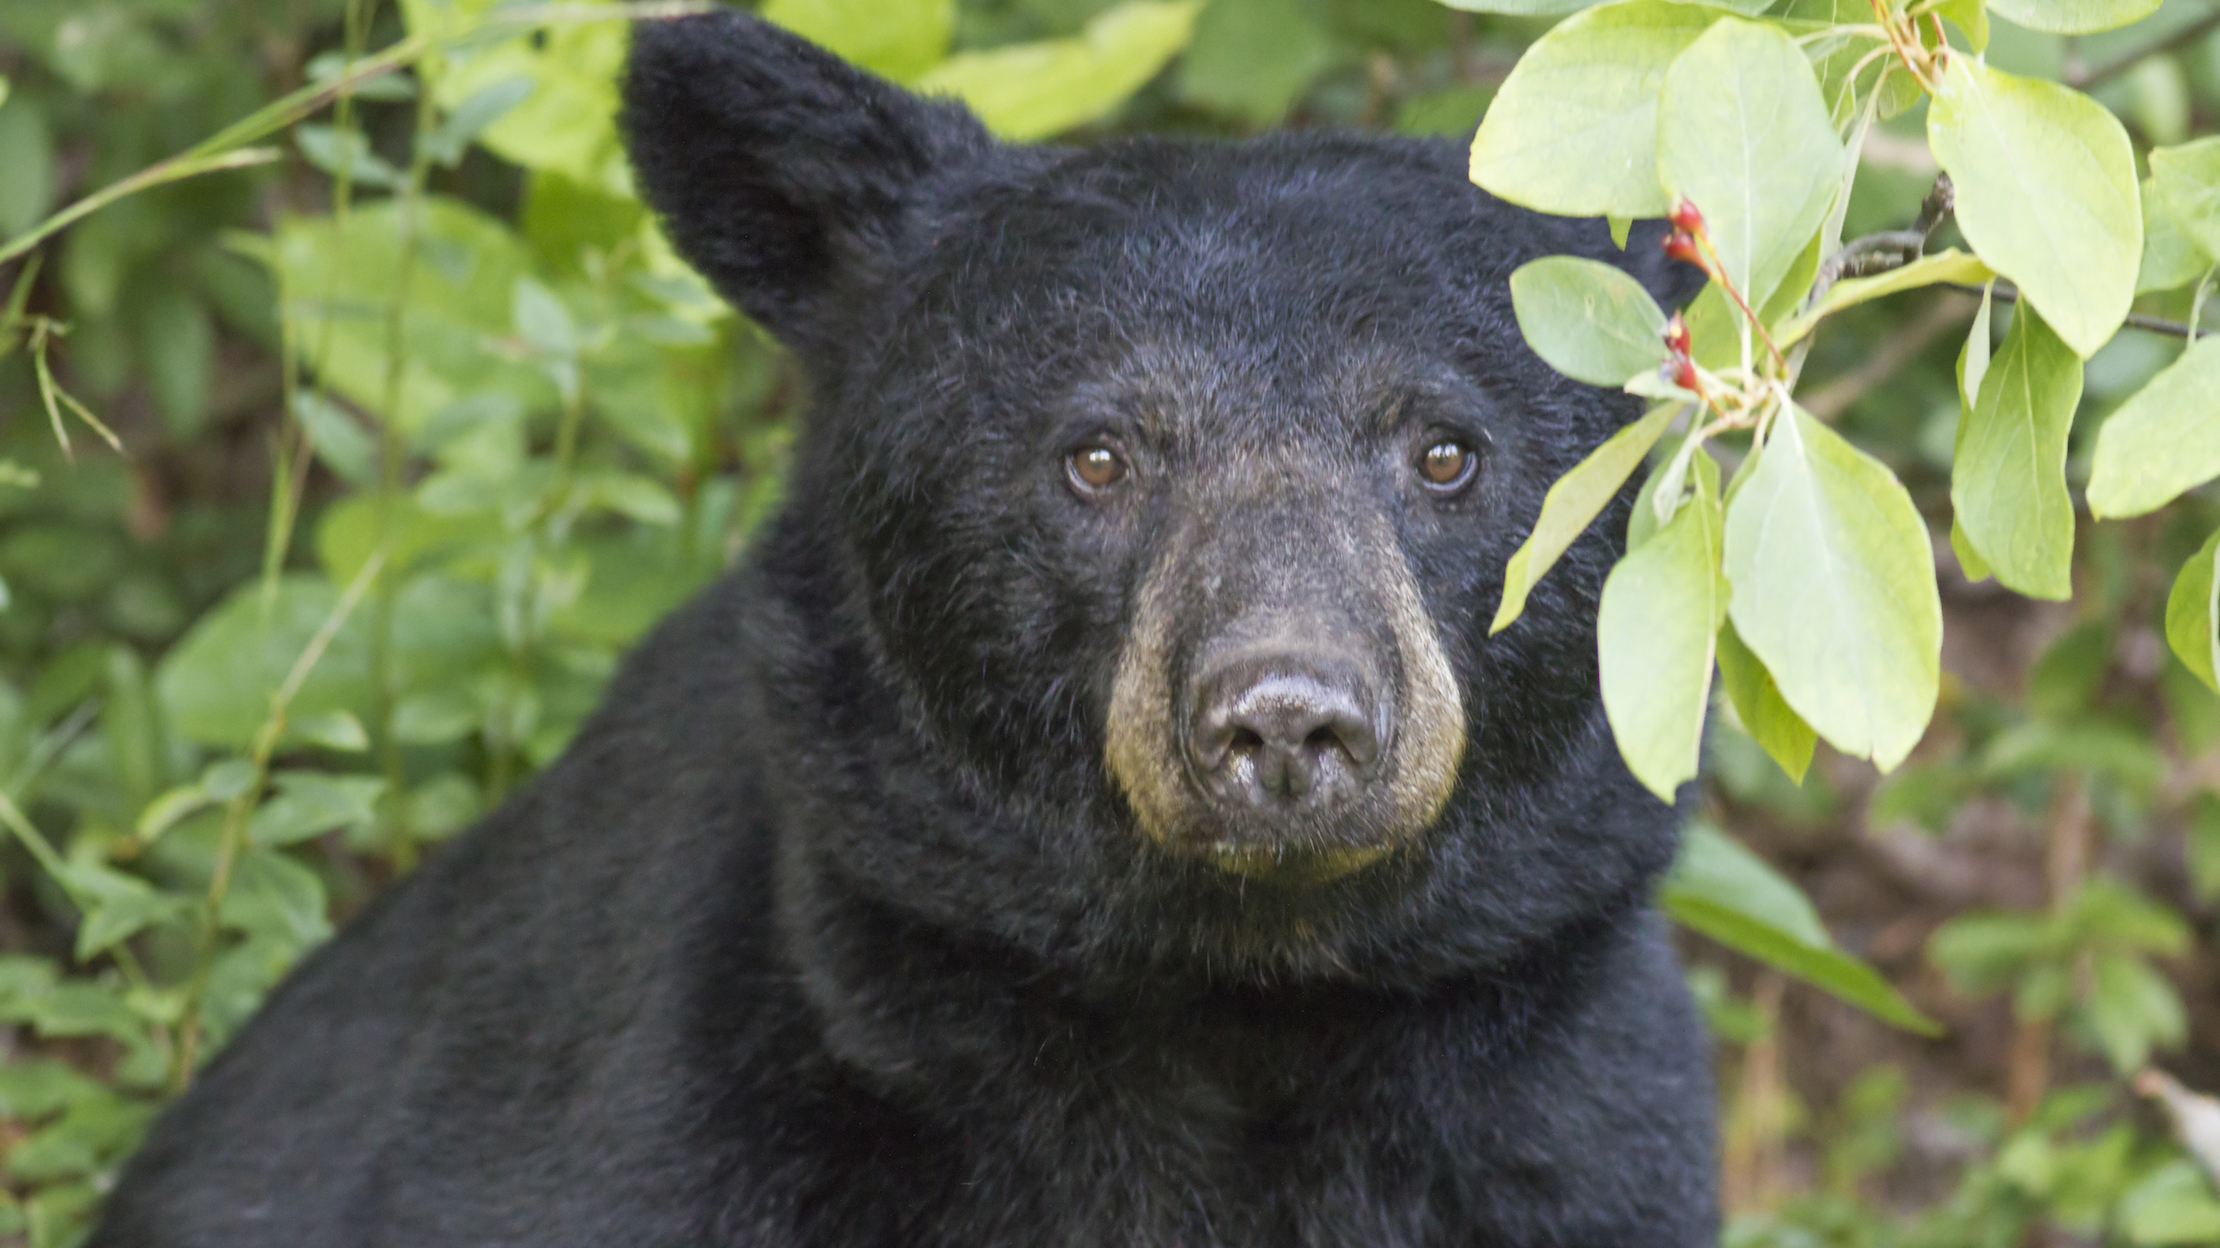 A black bear looking at the camera in the woods